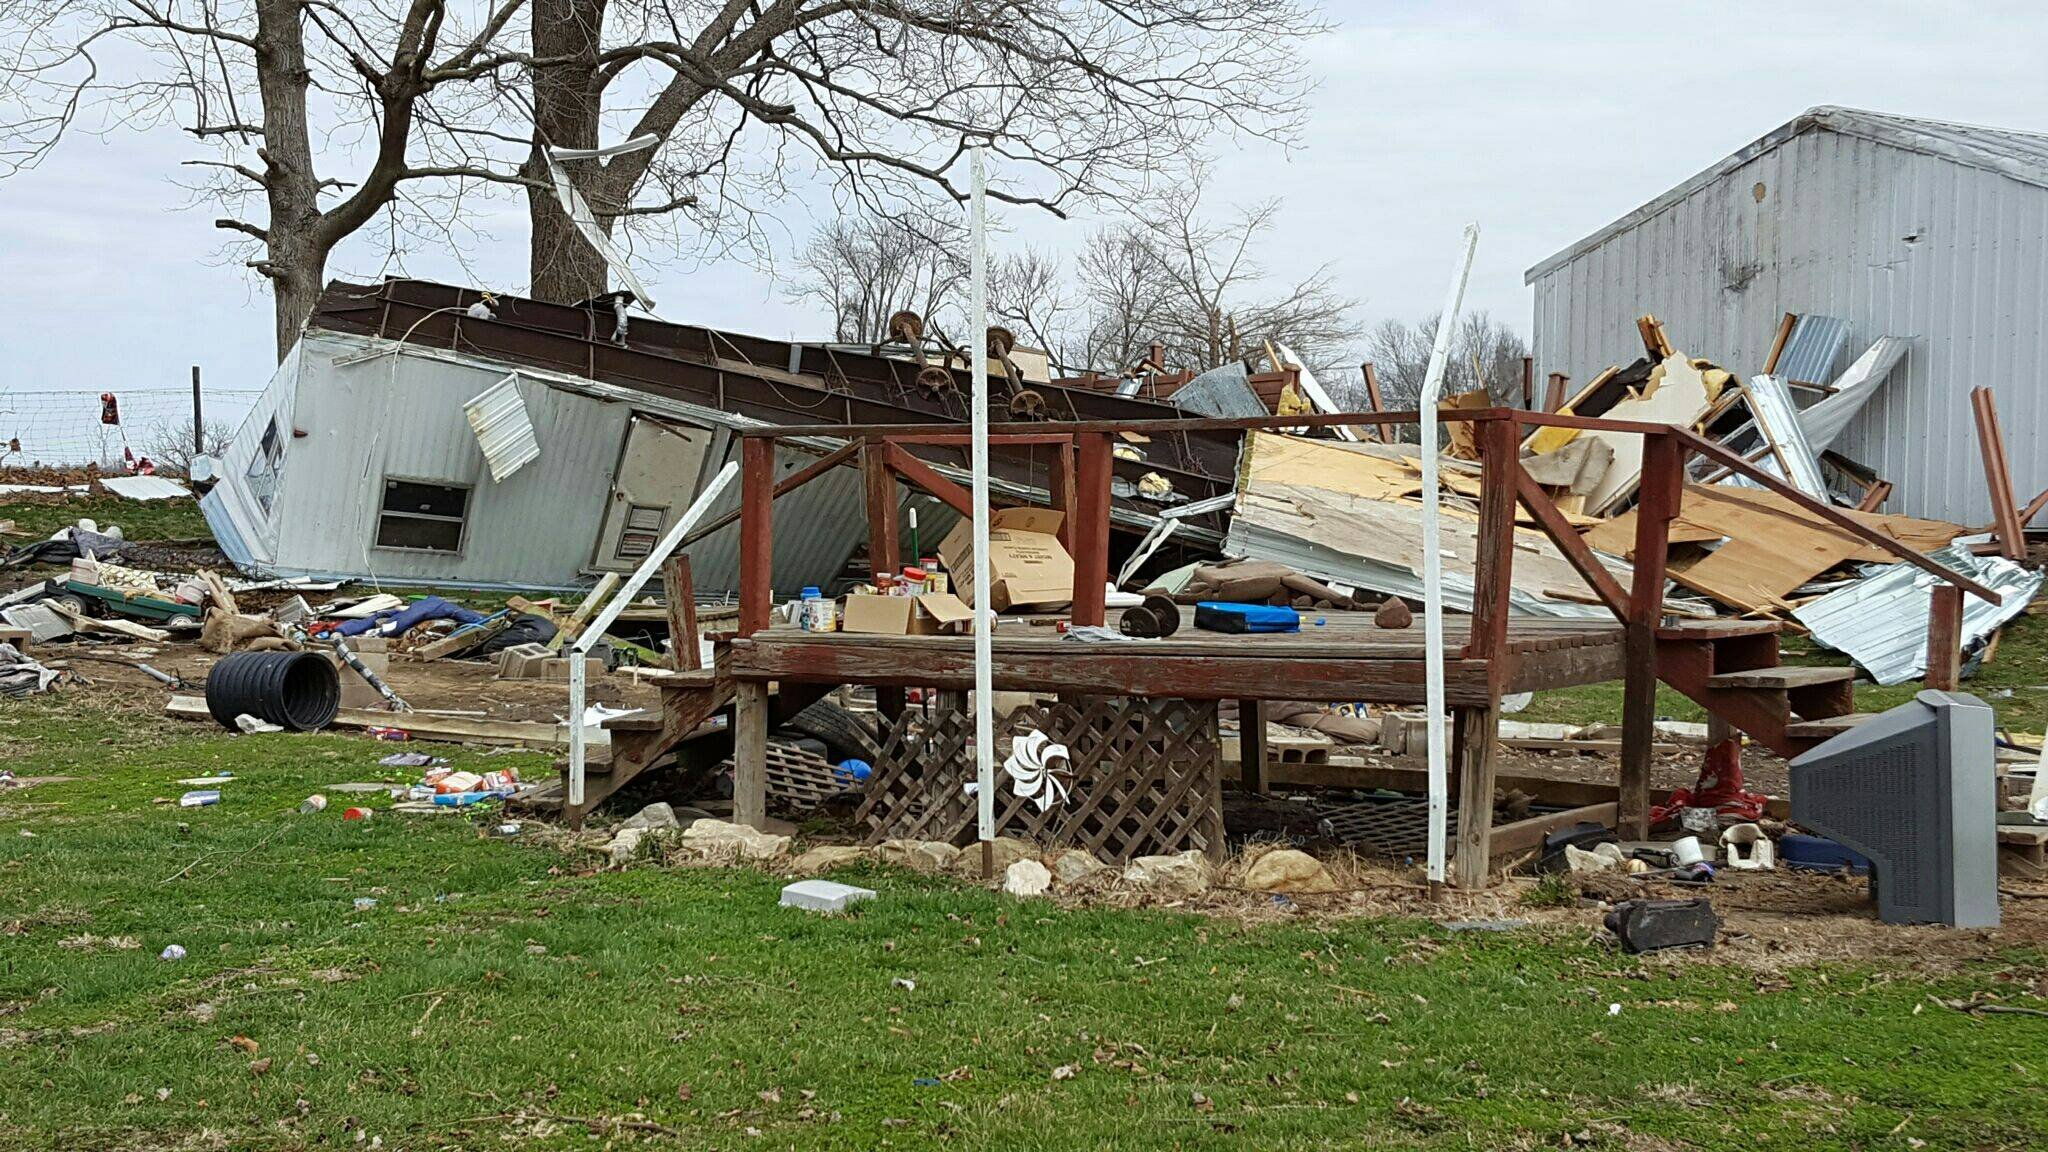 Illinois brown county versailles - One Of The Trailers Destroyed By The Tornado In Versailles Il